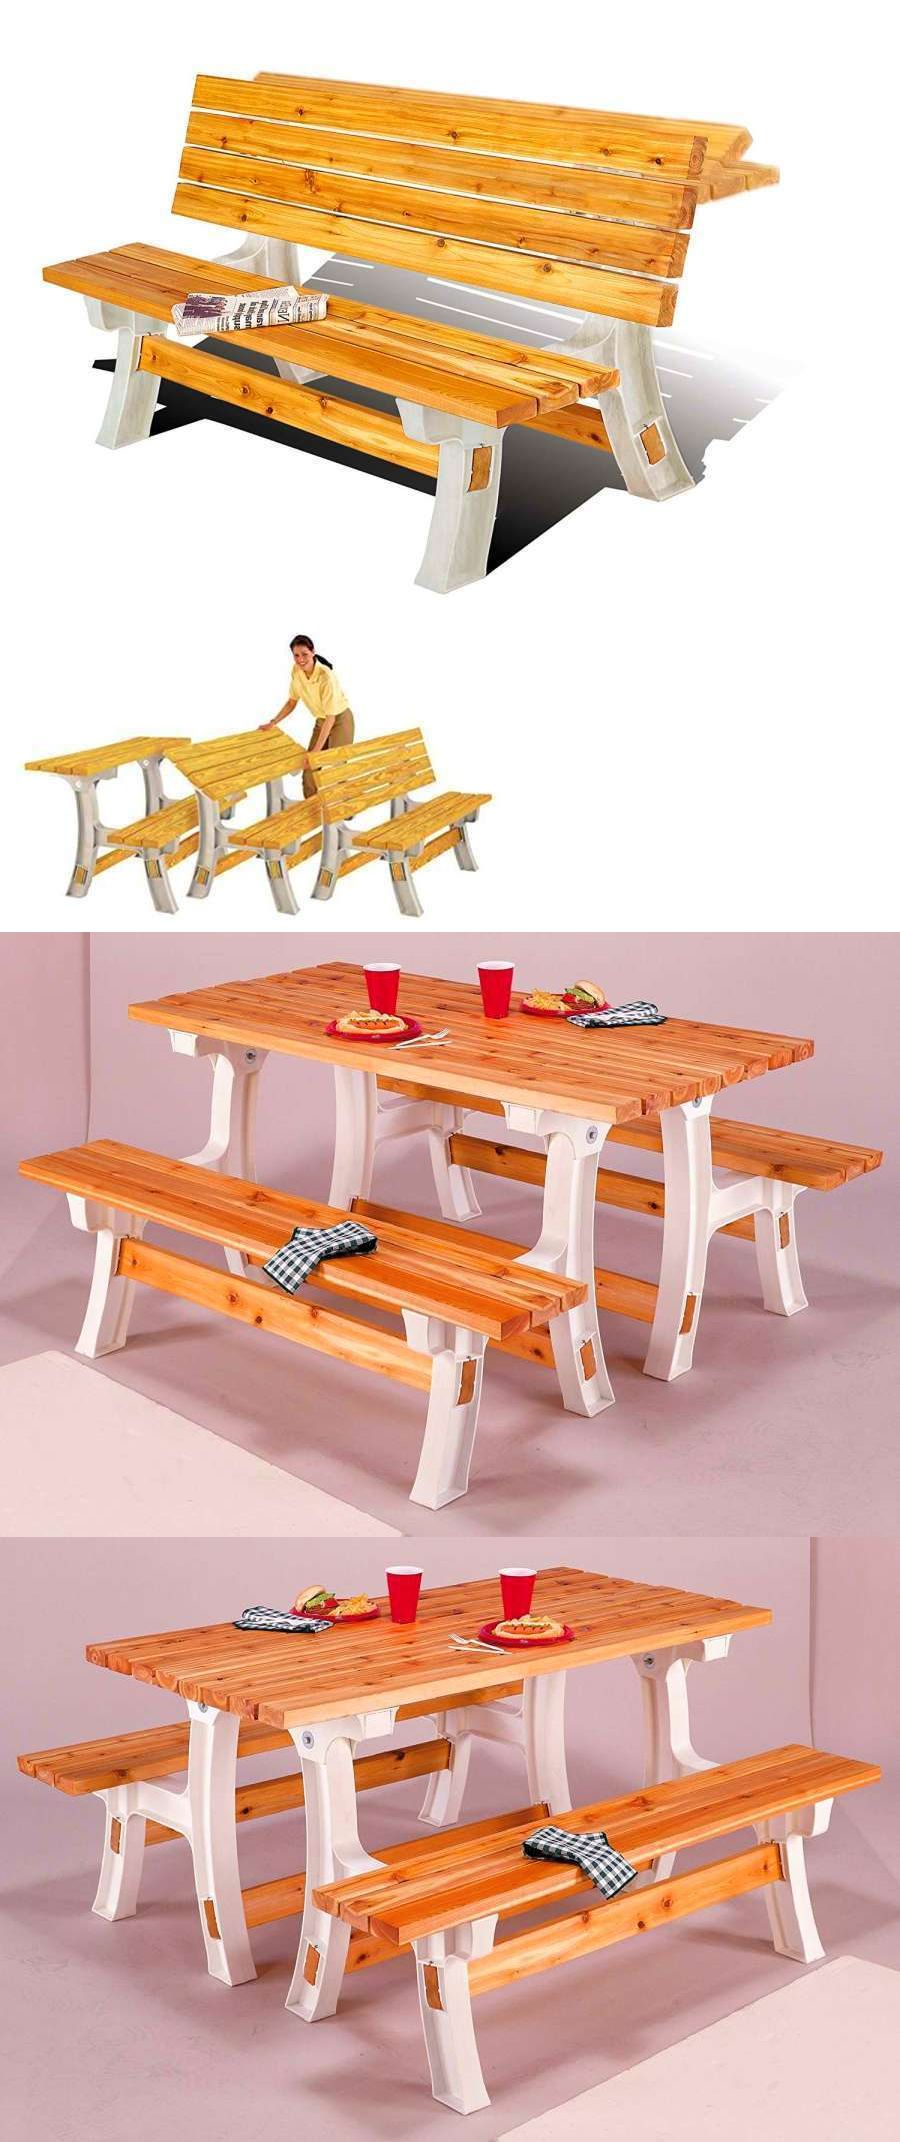 Benches 79678: Flip Top Picnic Folding Bench Table Outdoor Garden Patio Yard  Furniture Wooden